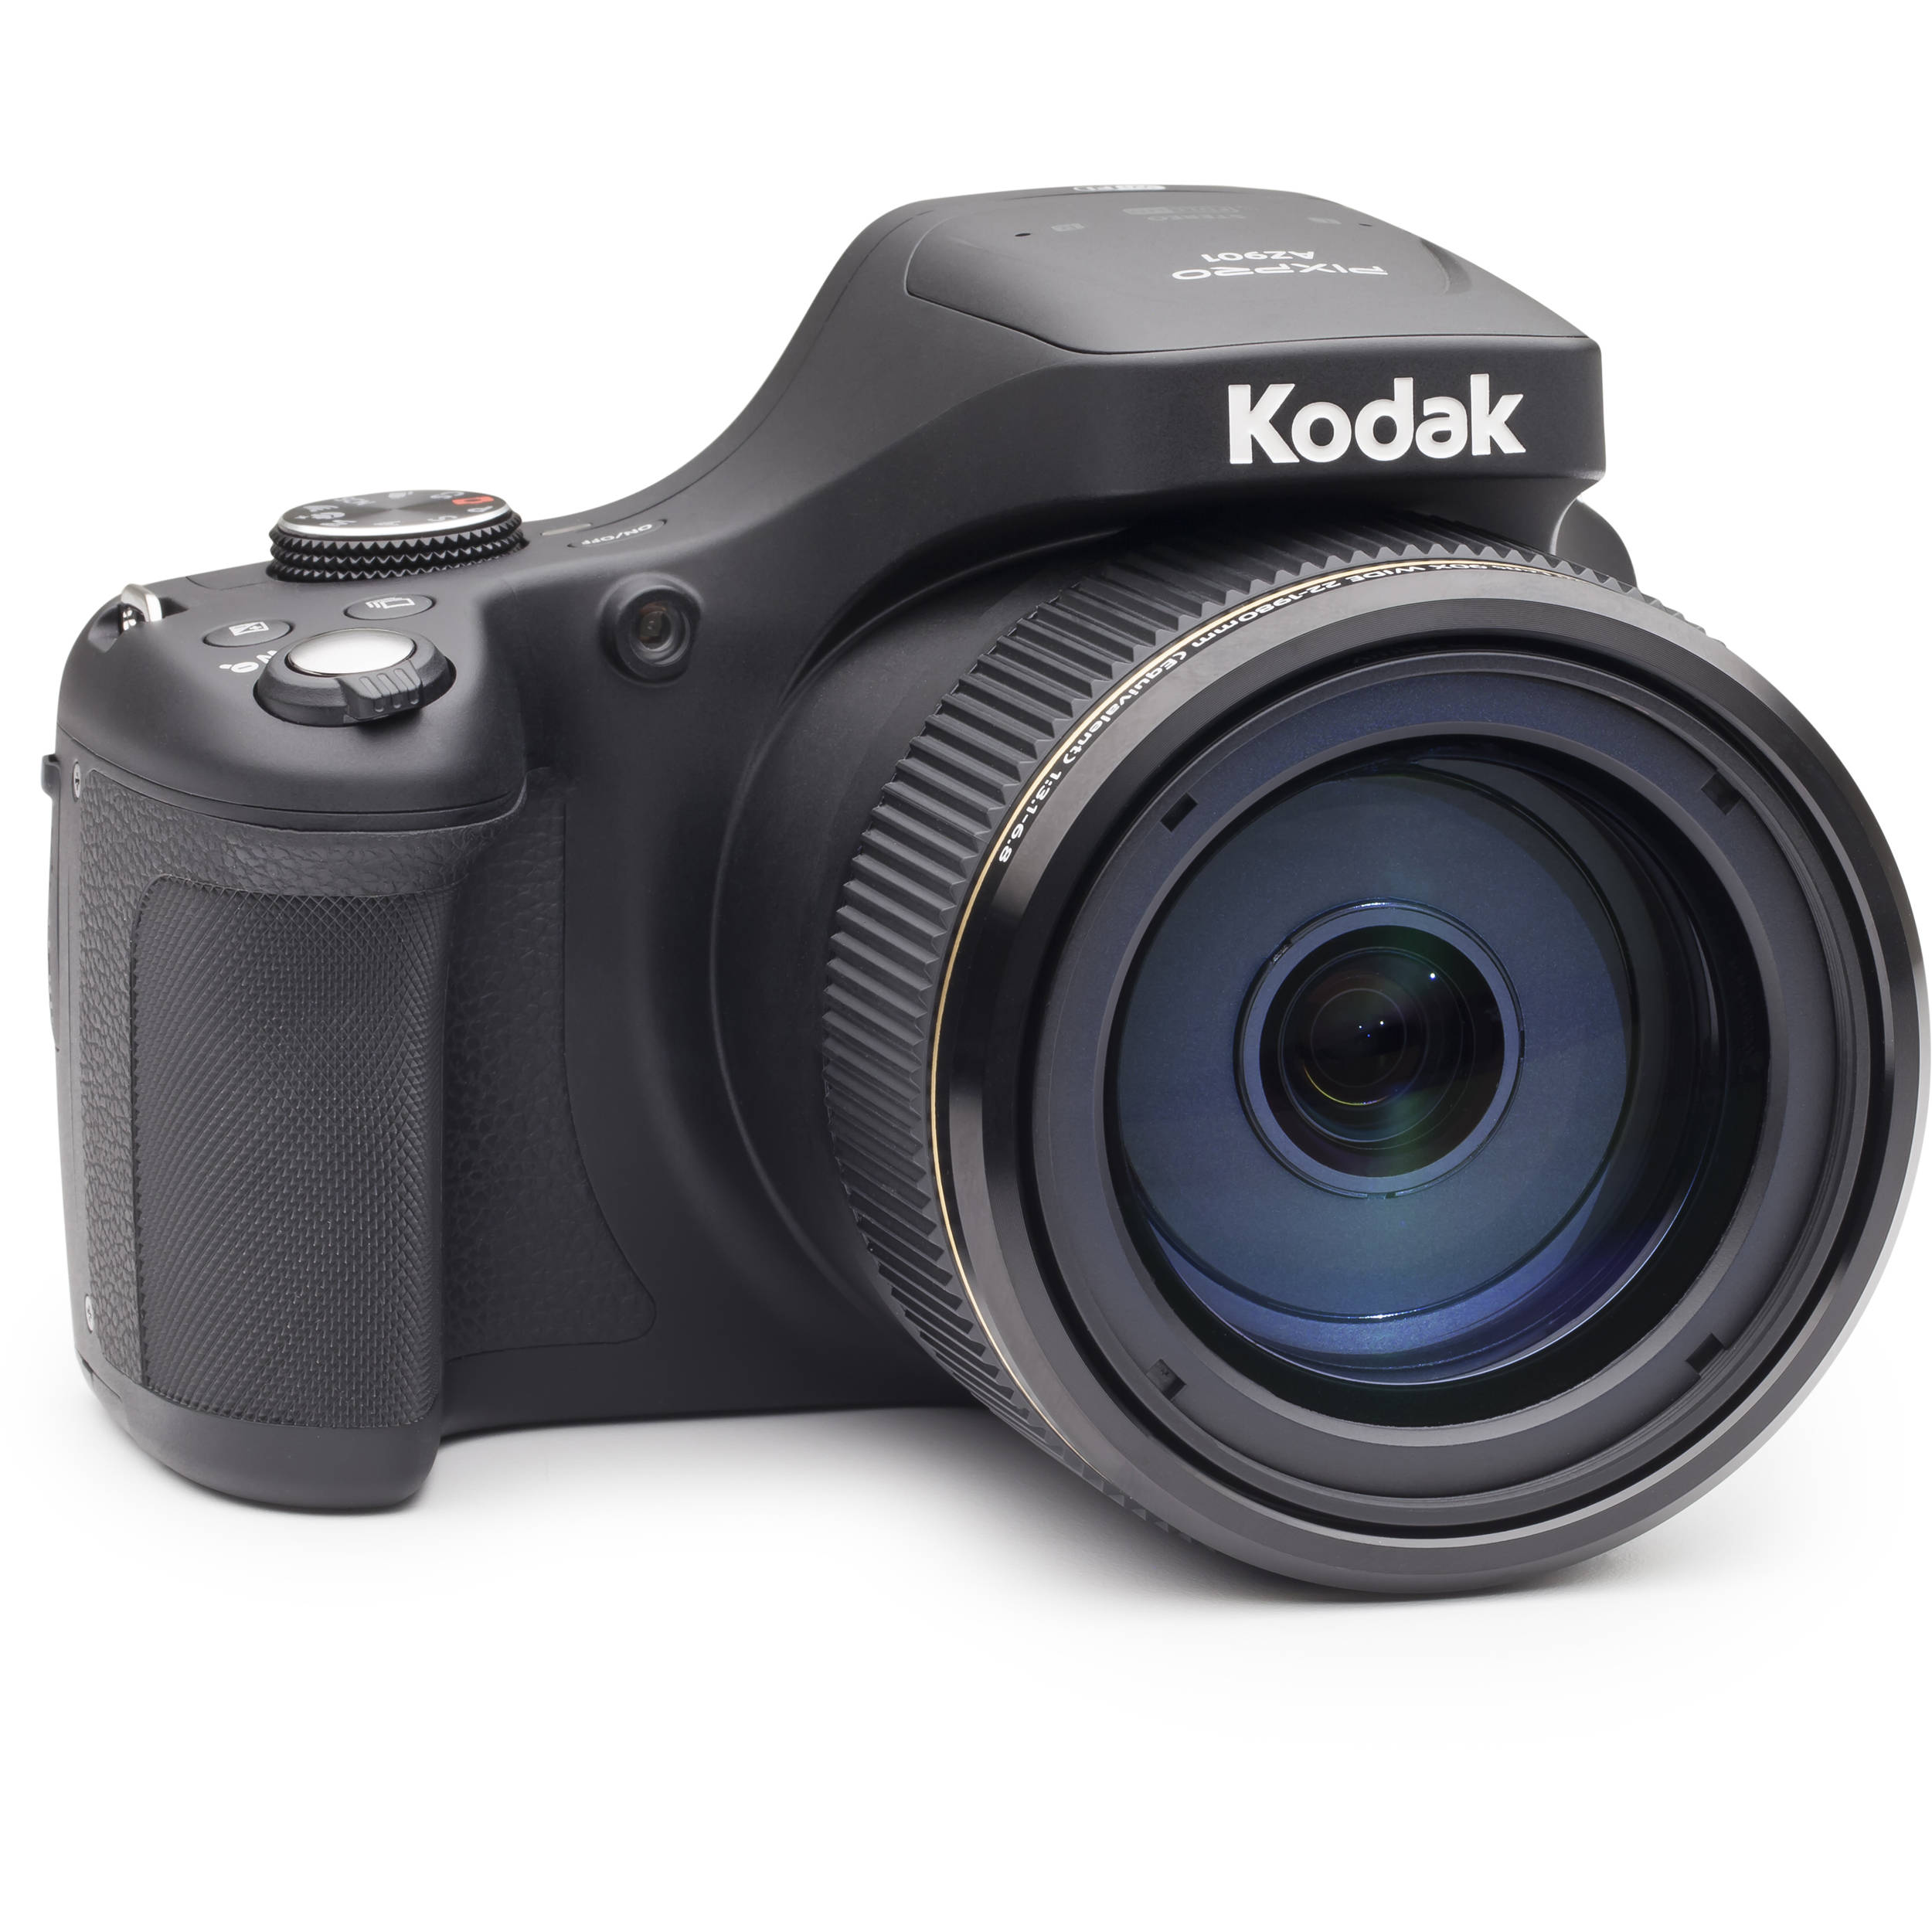 Kodak PIXPRO AZ901 Digital Camera AZ901BK B&H Photo Video